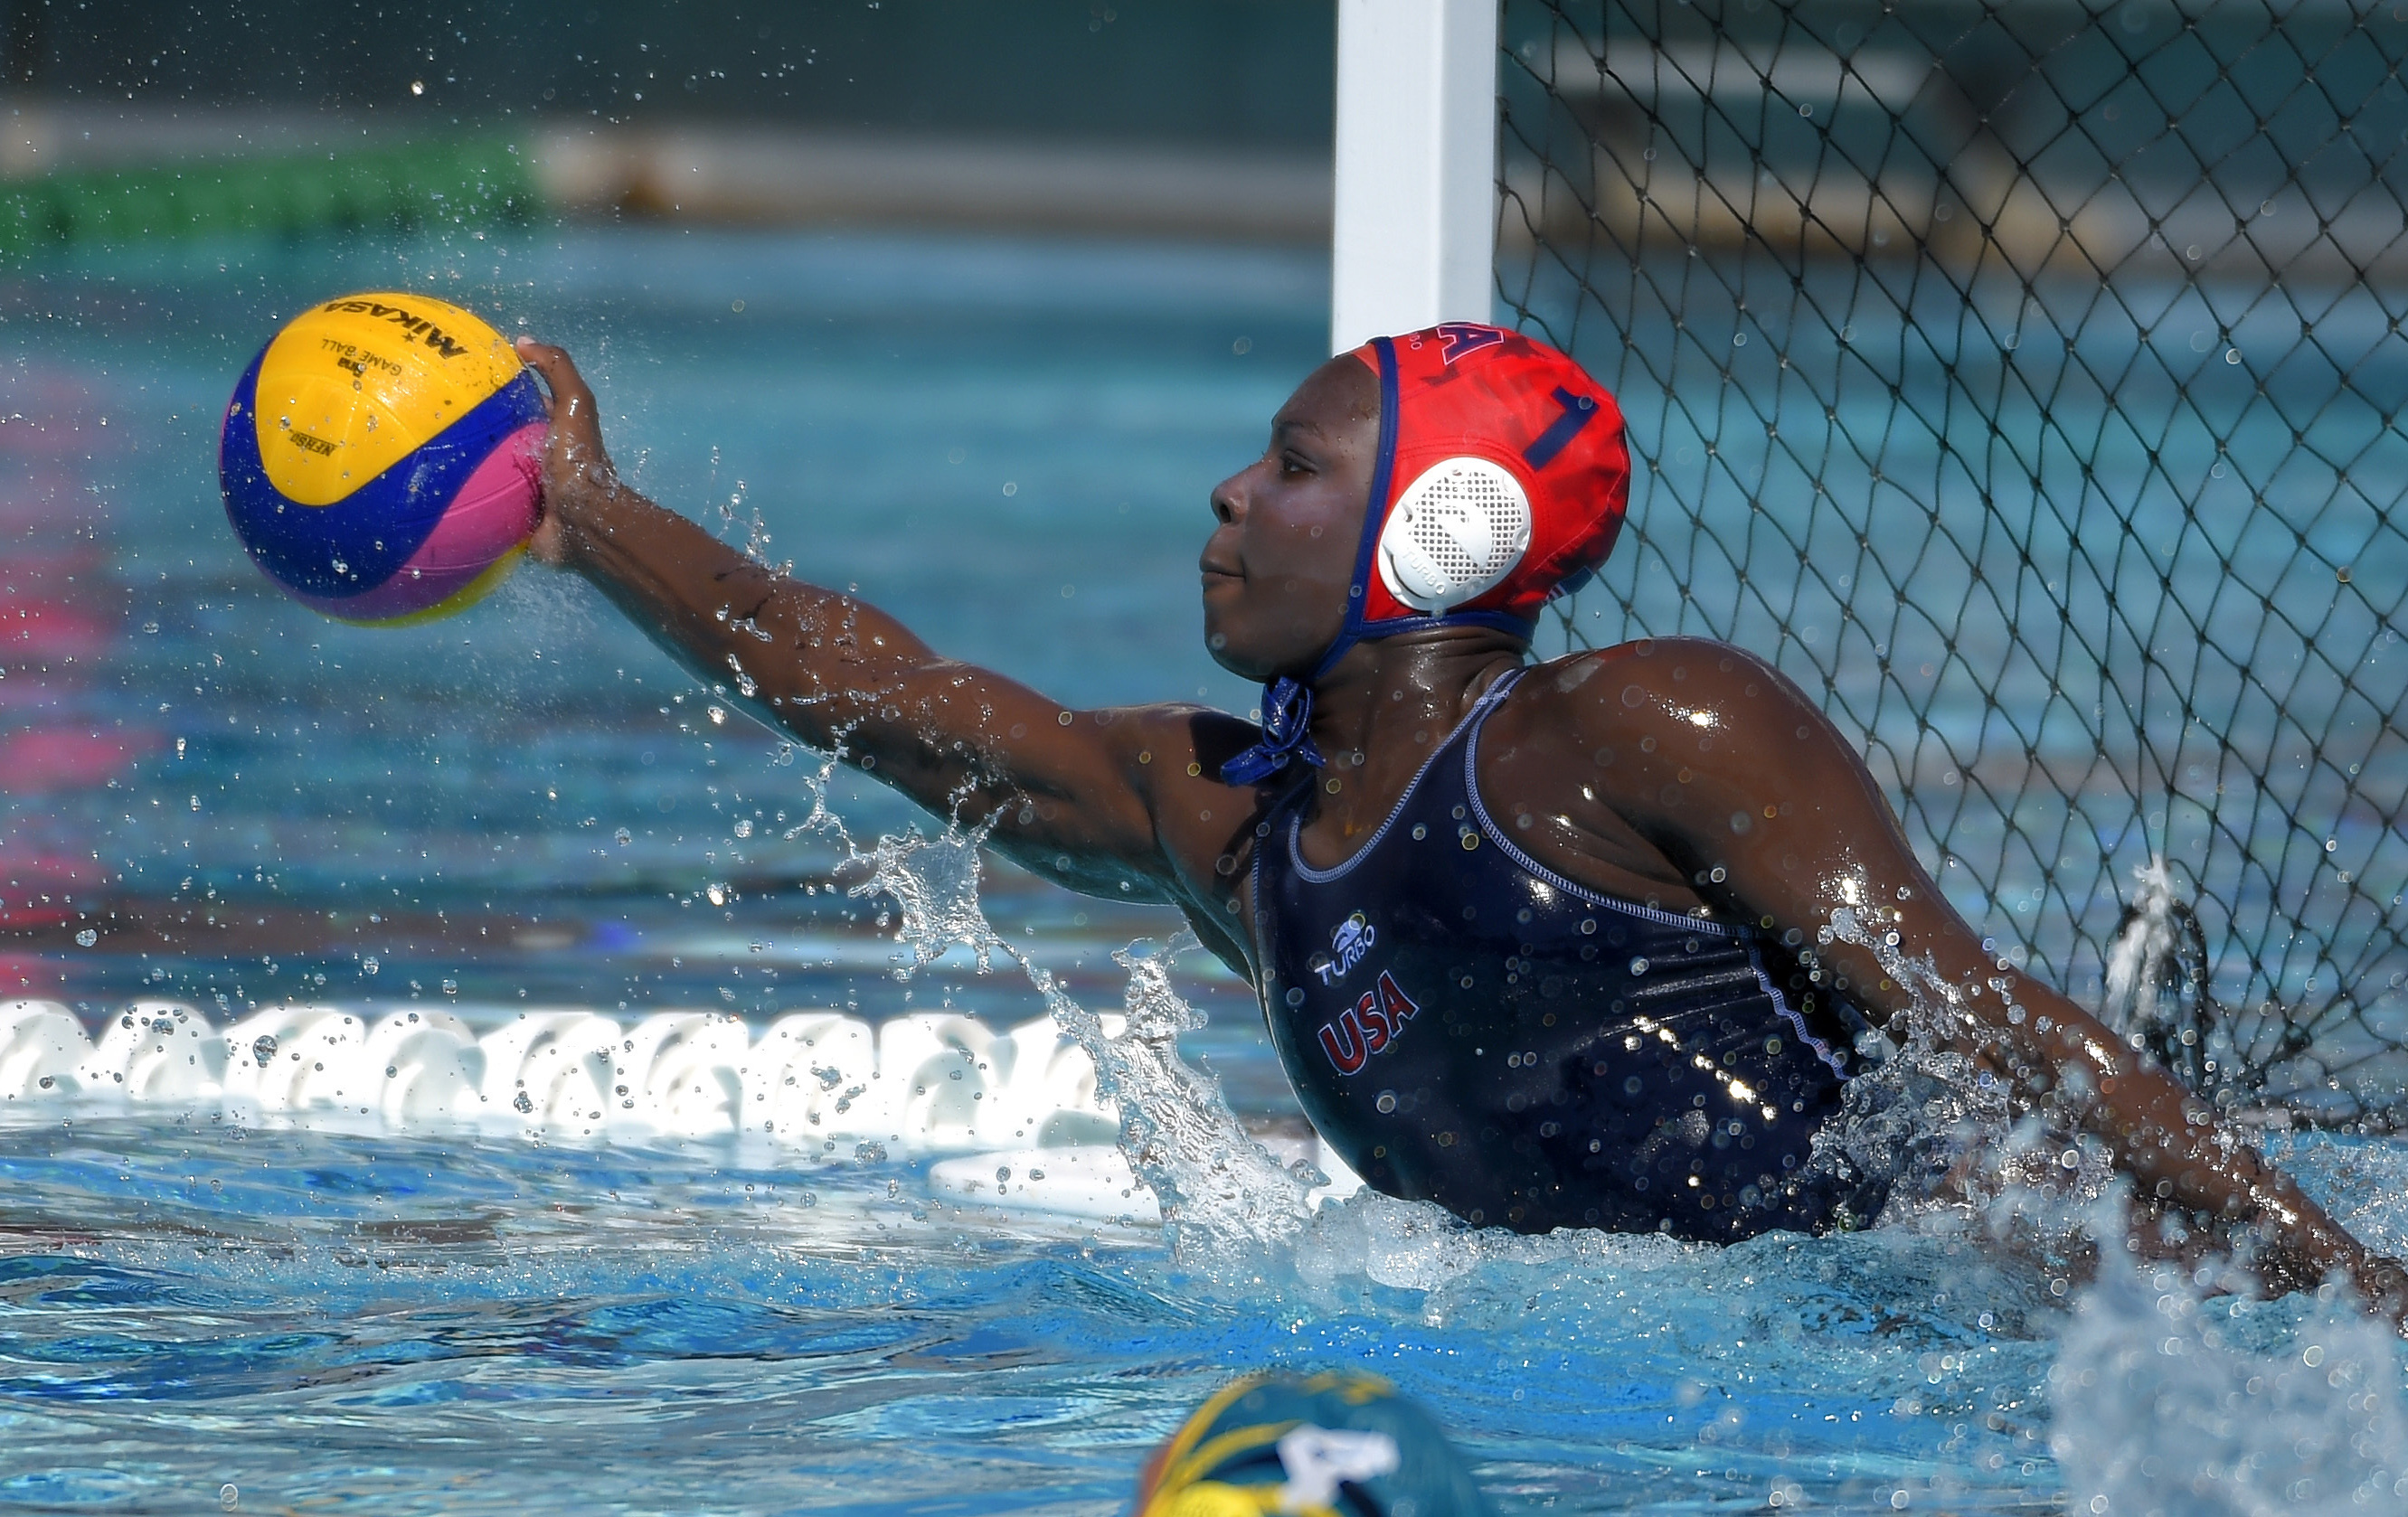 In this May 22, 2016, photo, U.S. goalkeeper Ashleigh Johnson stops a shot during an exhibition water polo match against Australia in Los Angeles. Johnson, a goaltender blessed with jaw-dropping athleticism, is a lock for Rio de Janeiro, putting her on tr